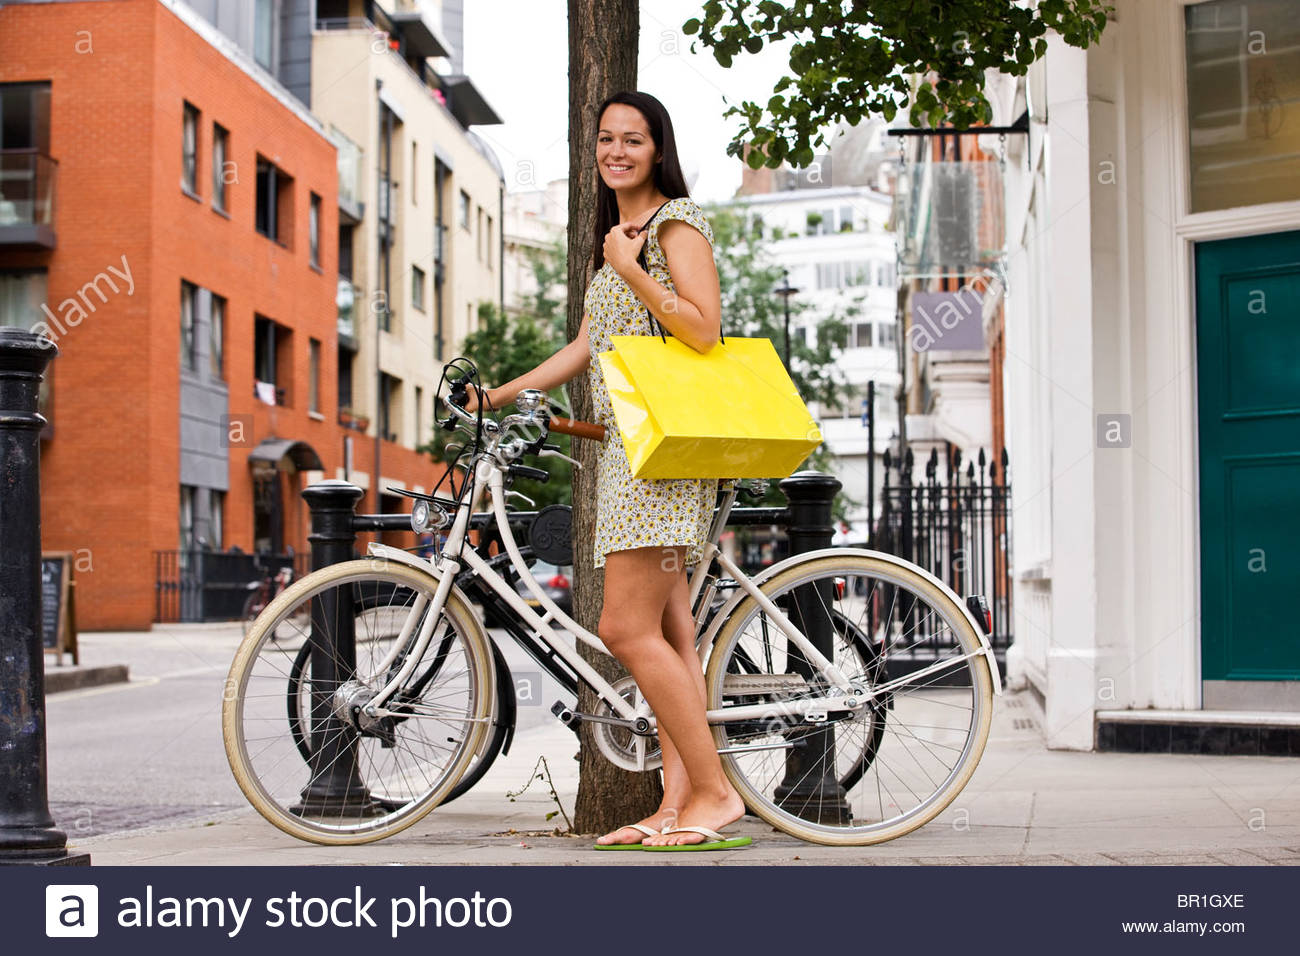 A young woman standing next to her bicycle, carrying a shopping bag - Stock Image